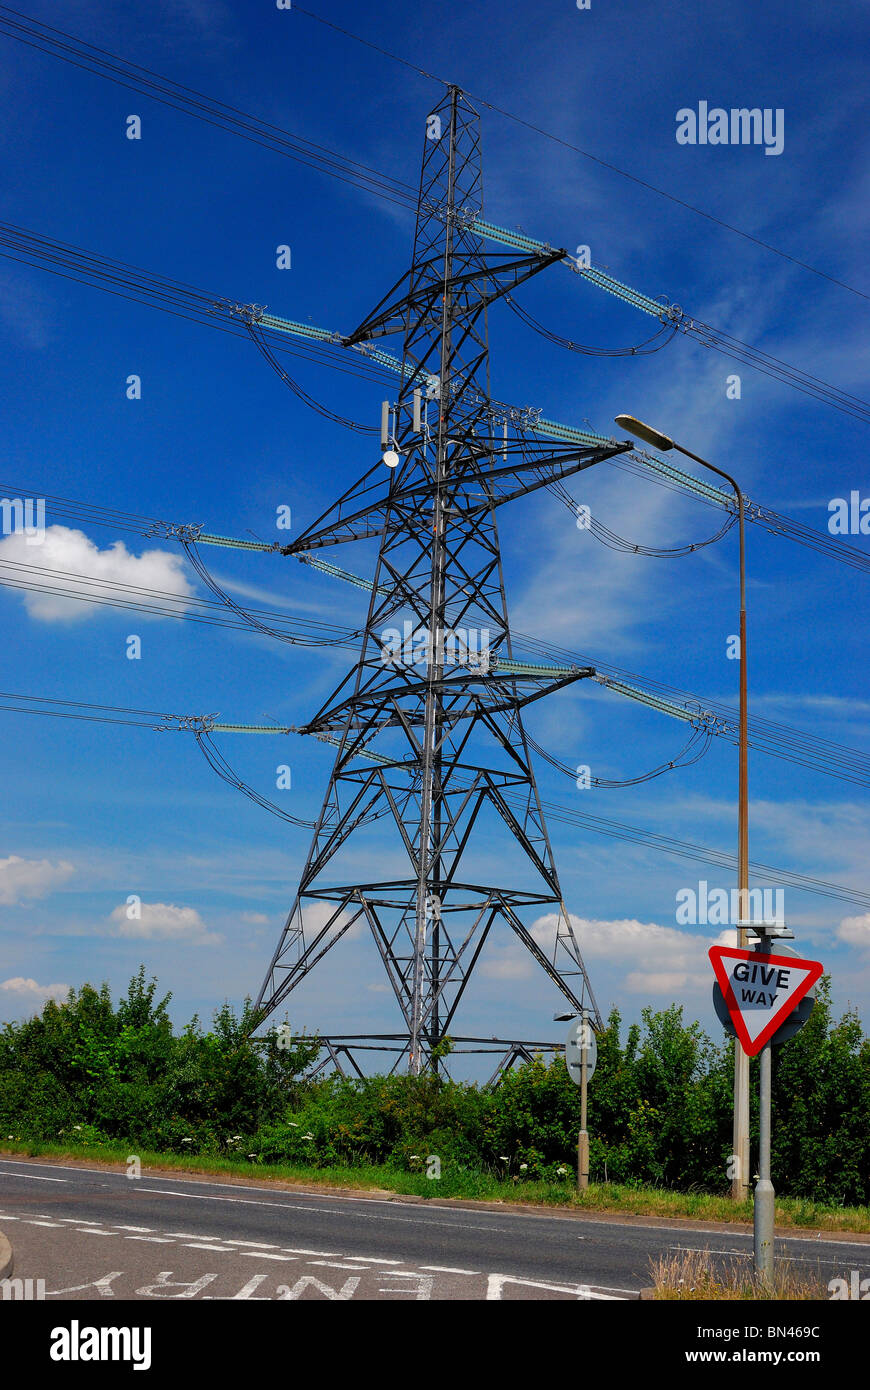 Electricity Pylon next to road junction - Stock Image